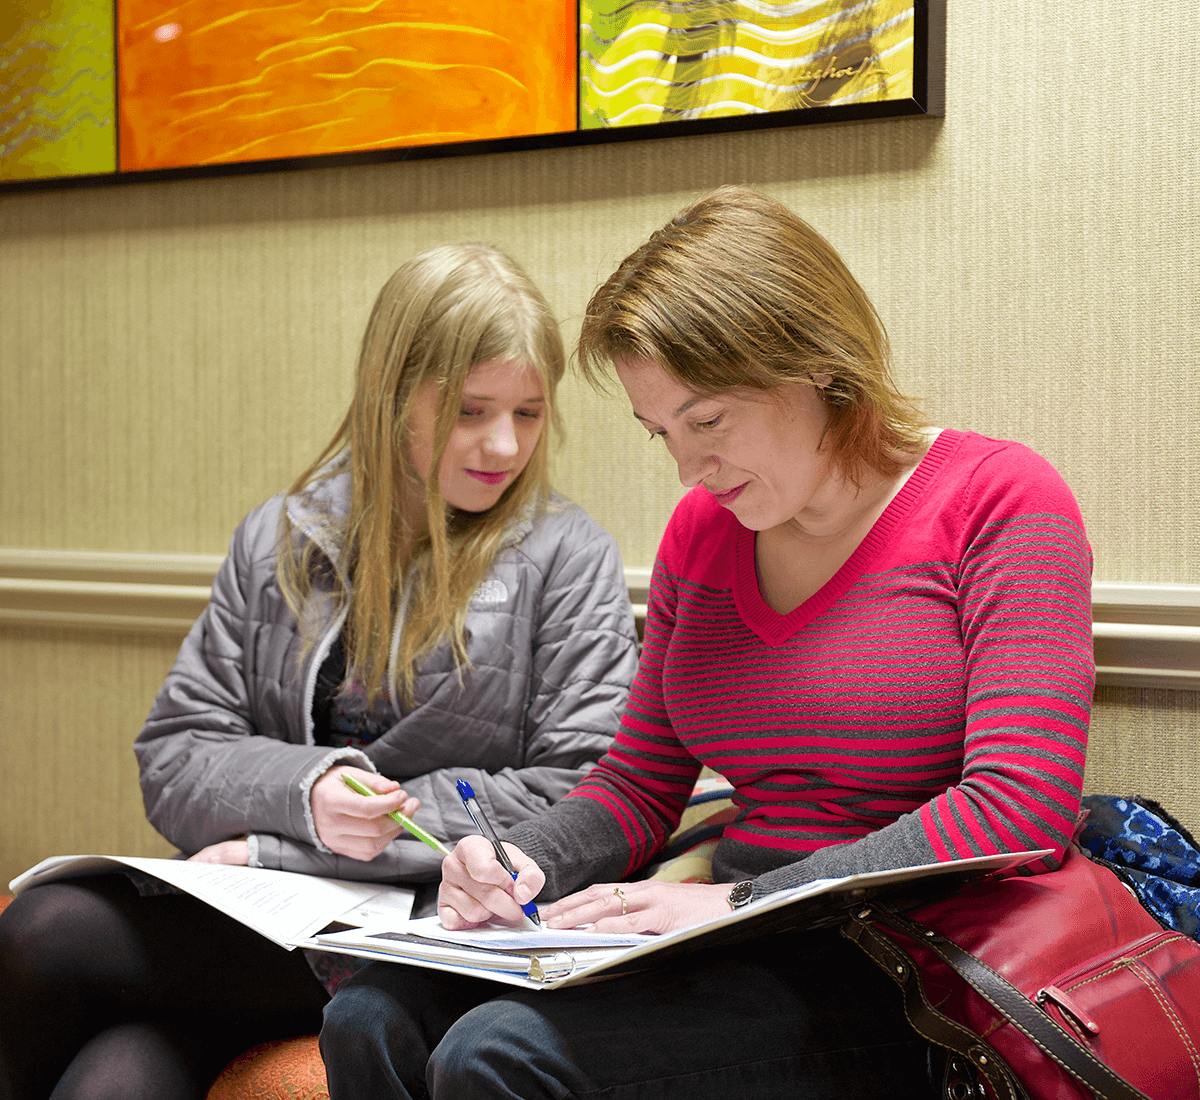 two women talking while looking at a notebook